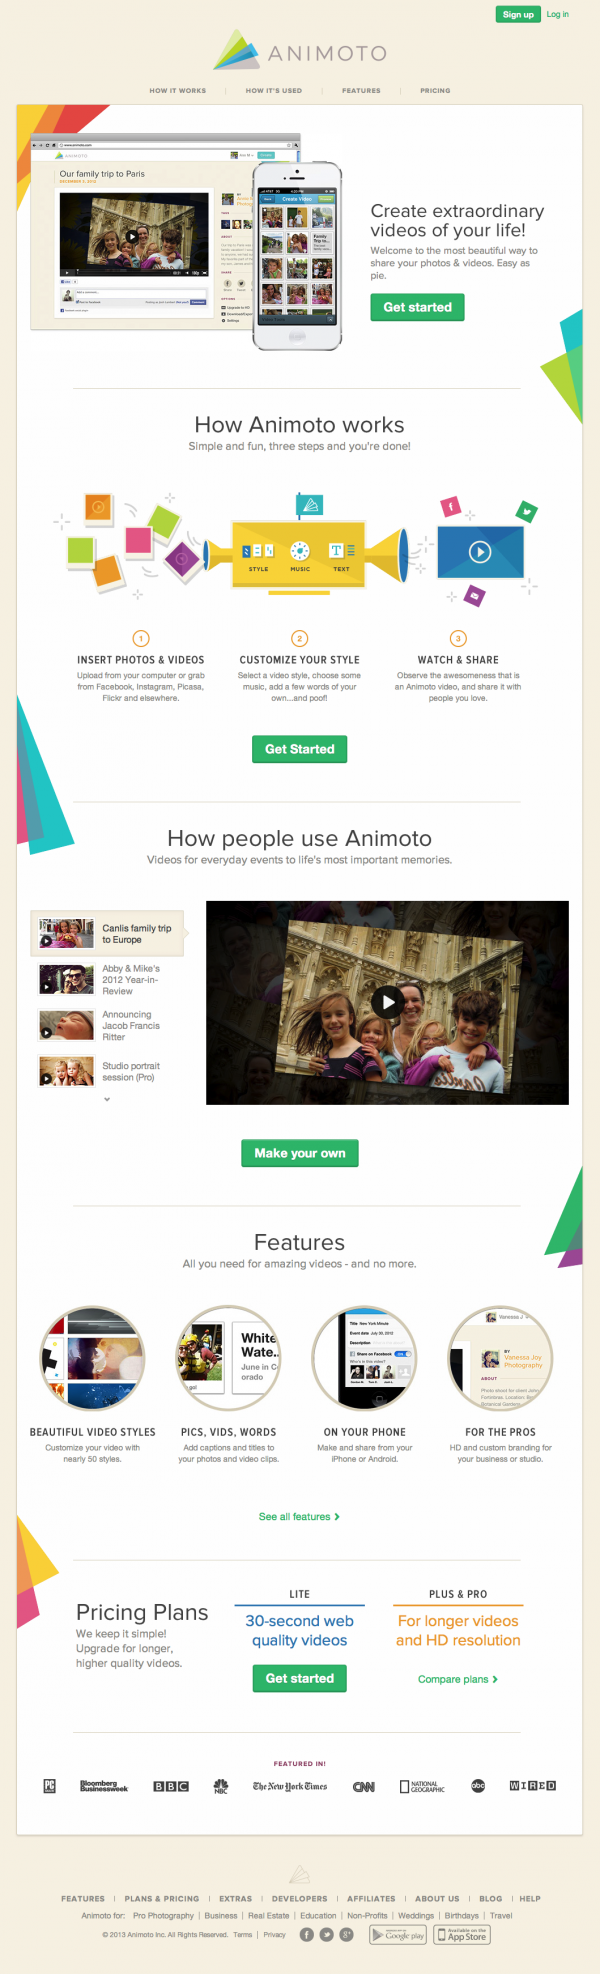 Animoto - Make and Share Beautiful Videos Online